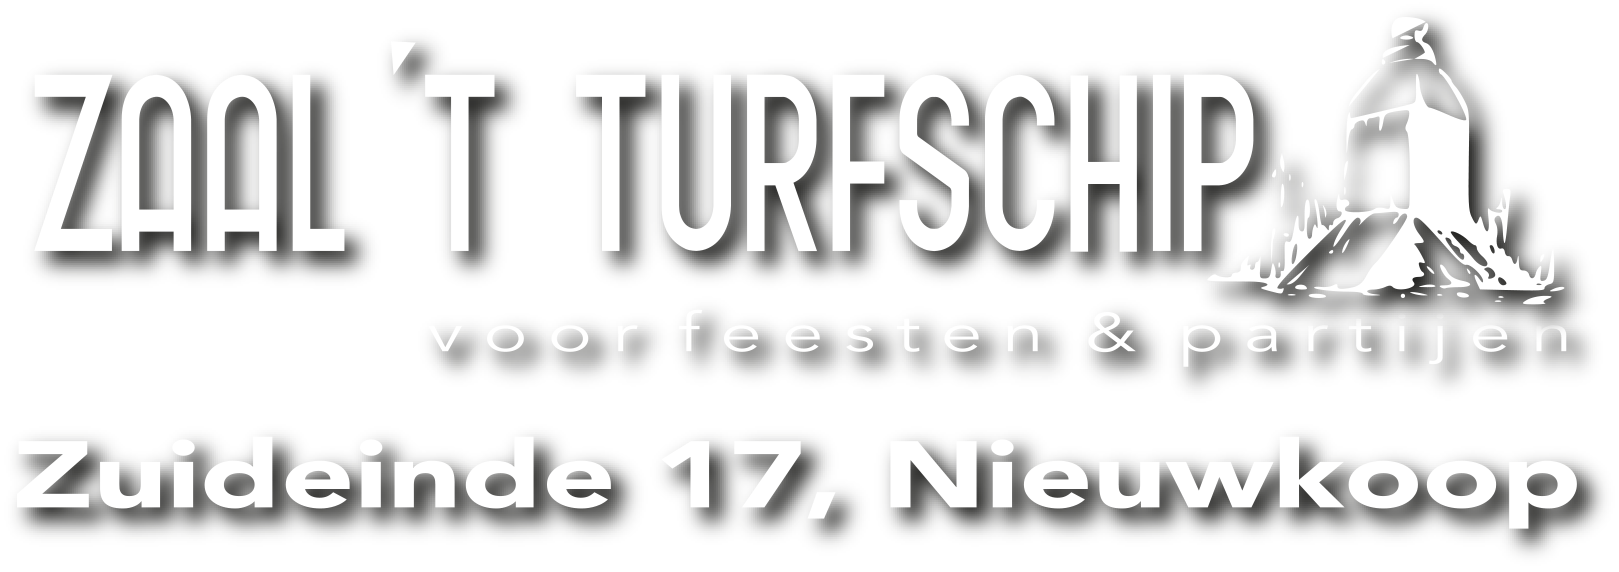 turfschip-wit